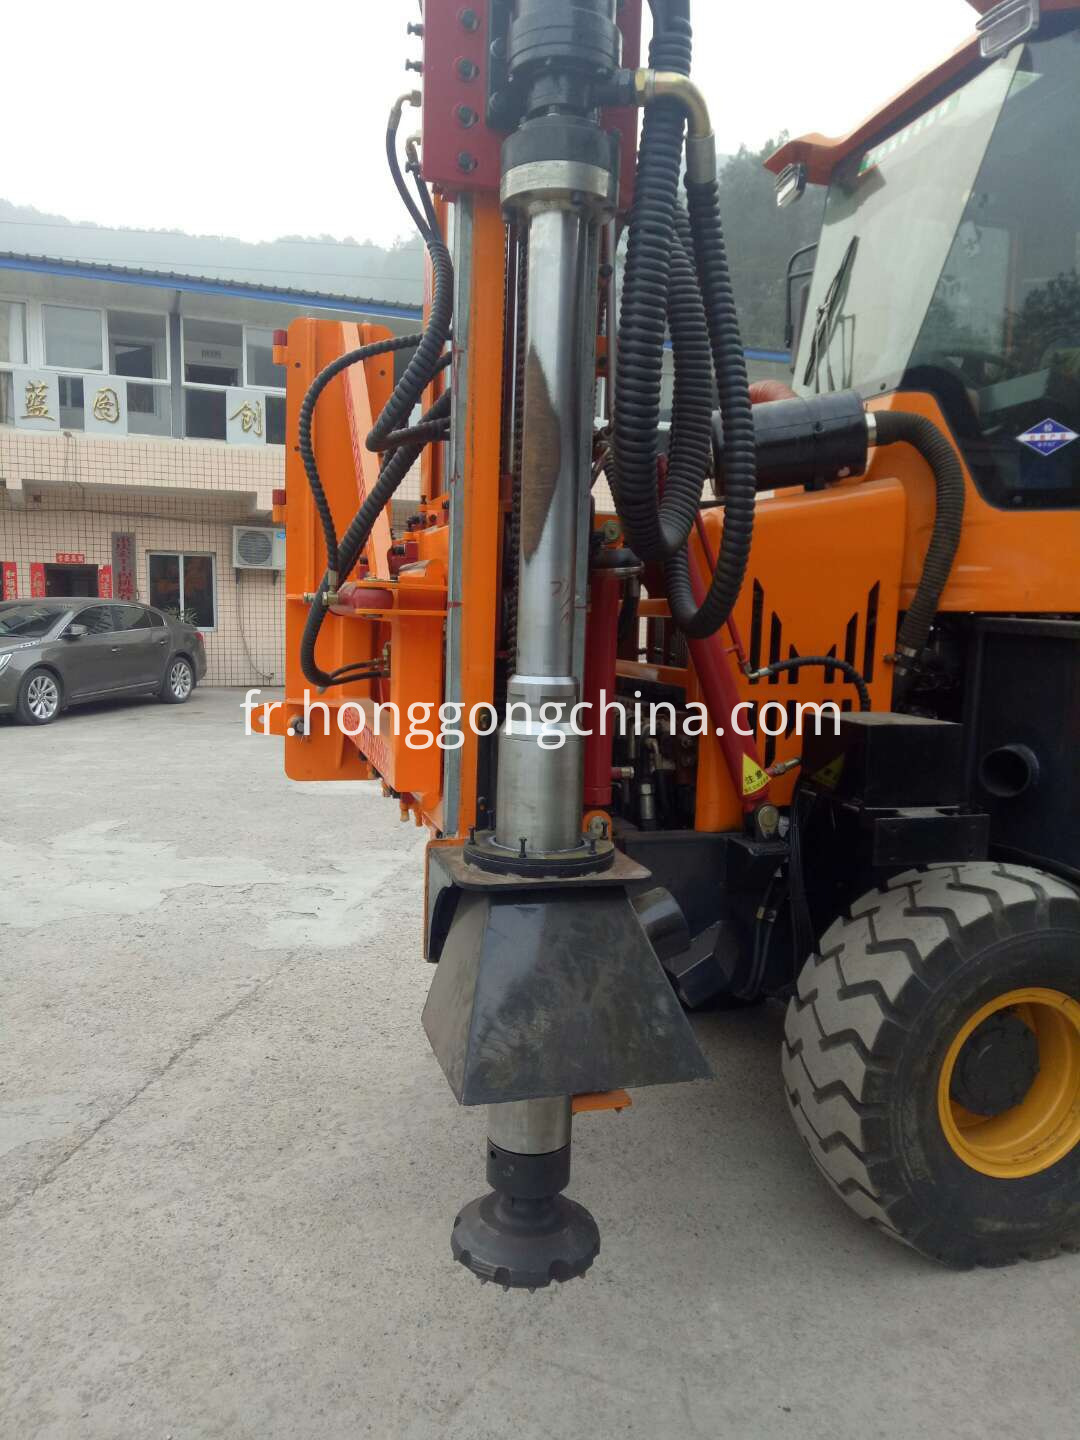 Competitive Hydraulic Diesel Hammer Pile Driver